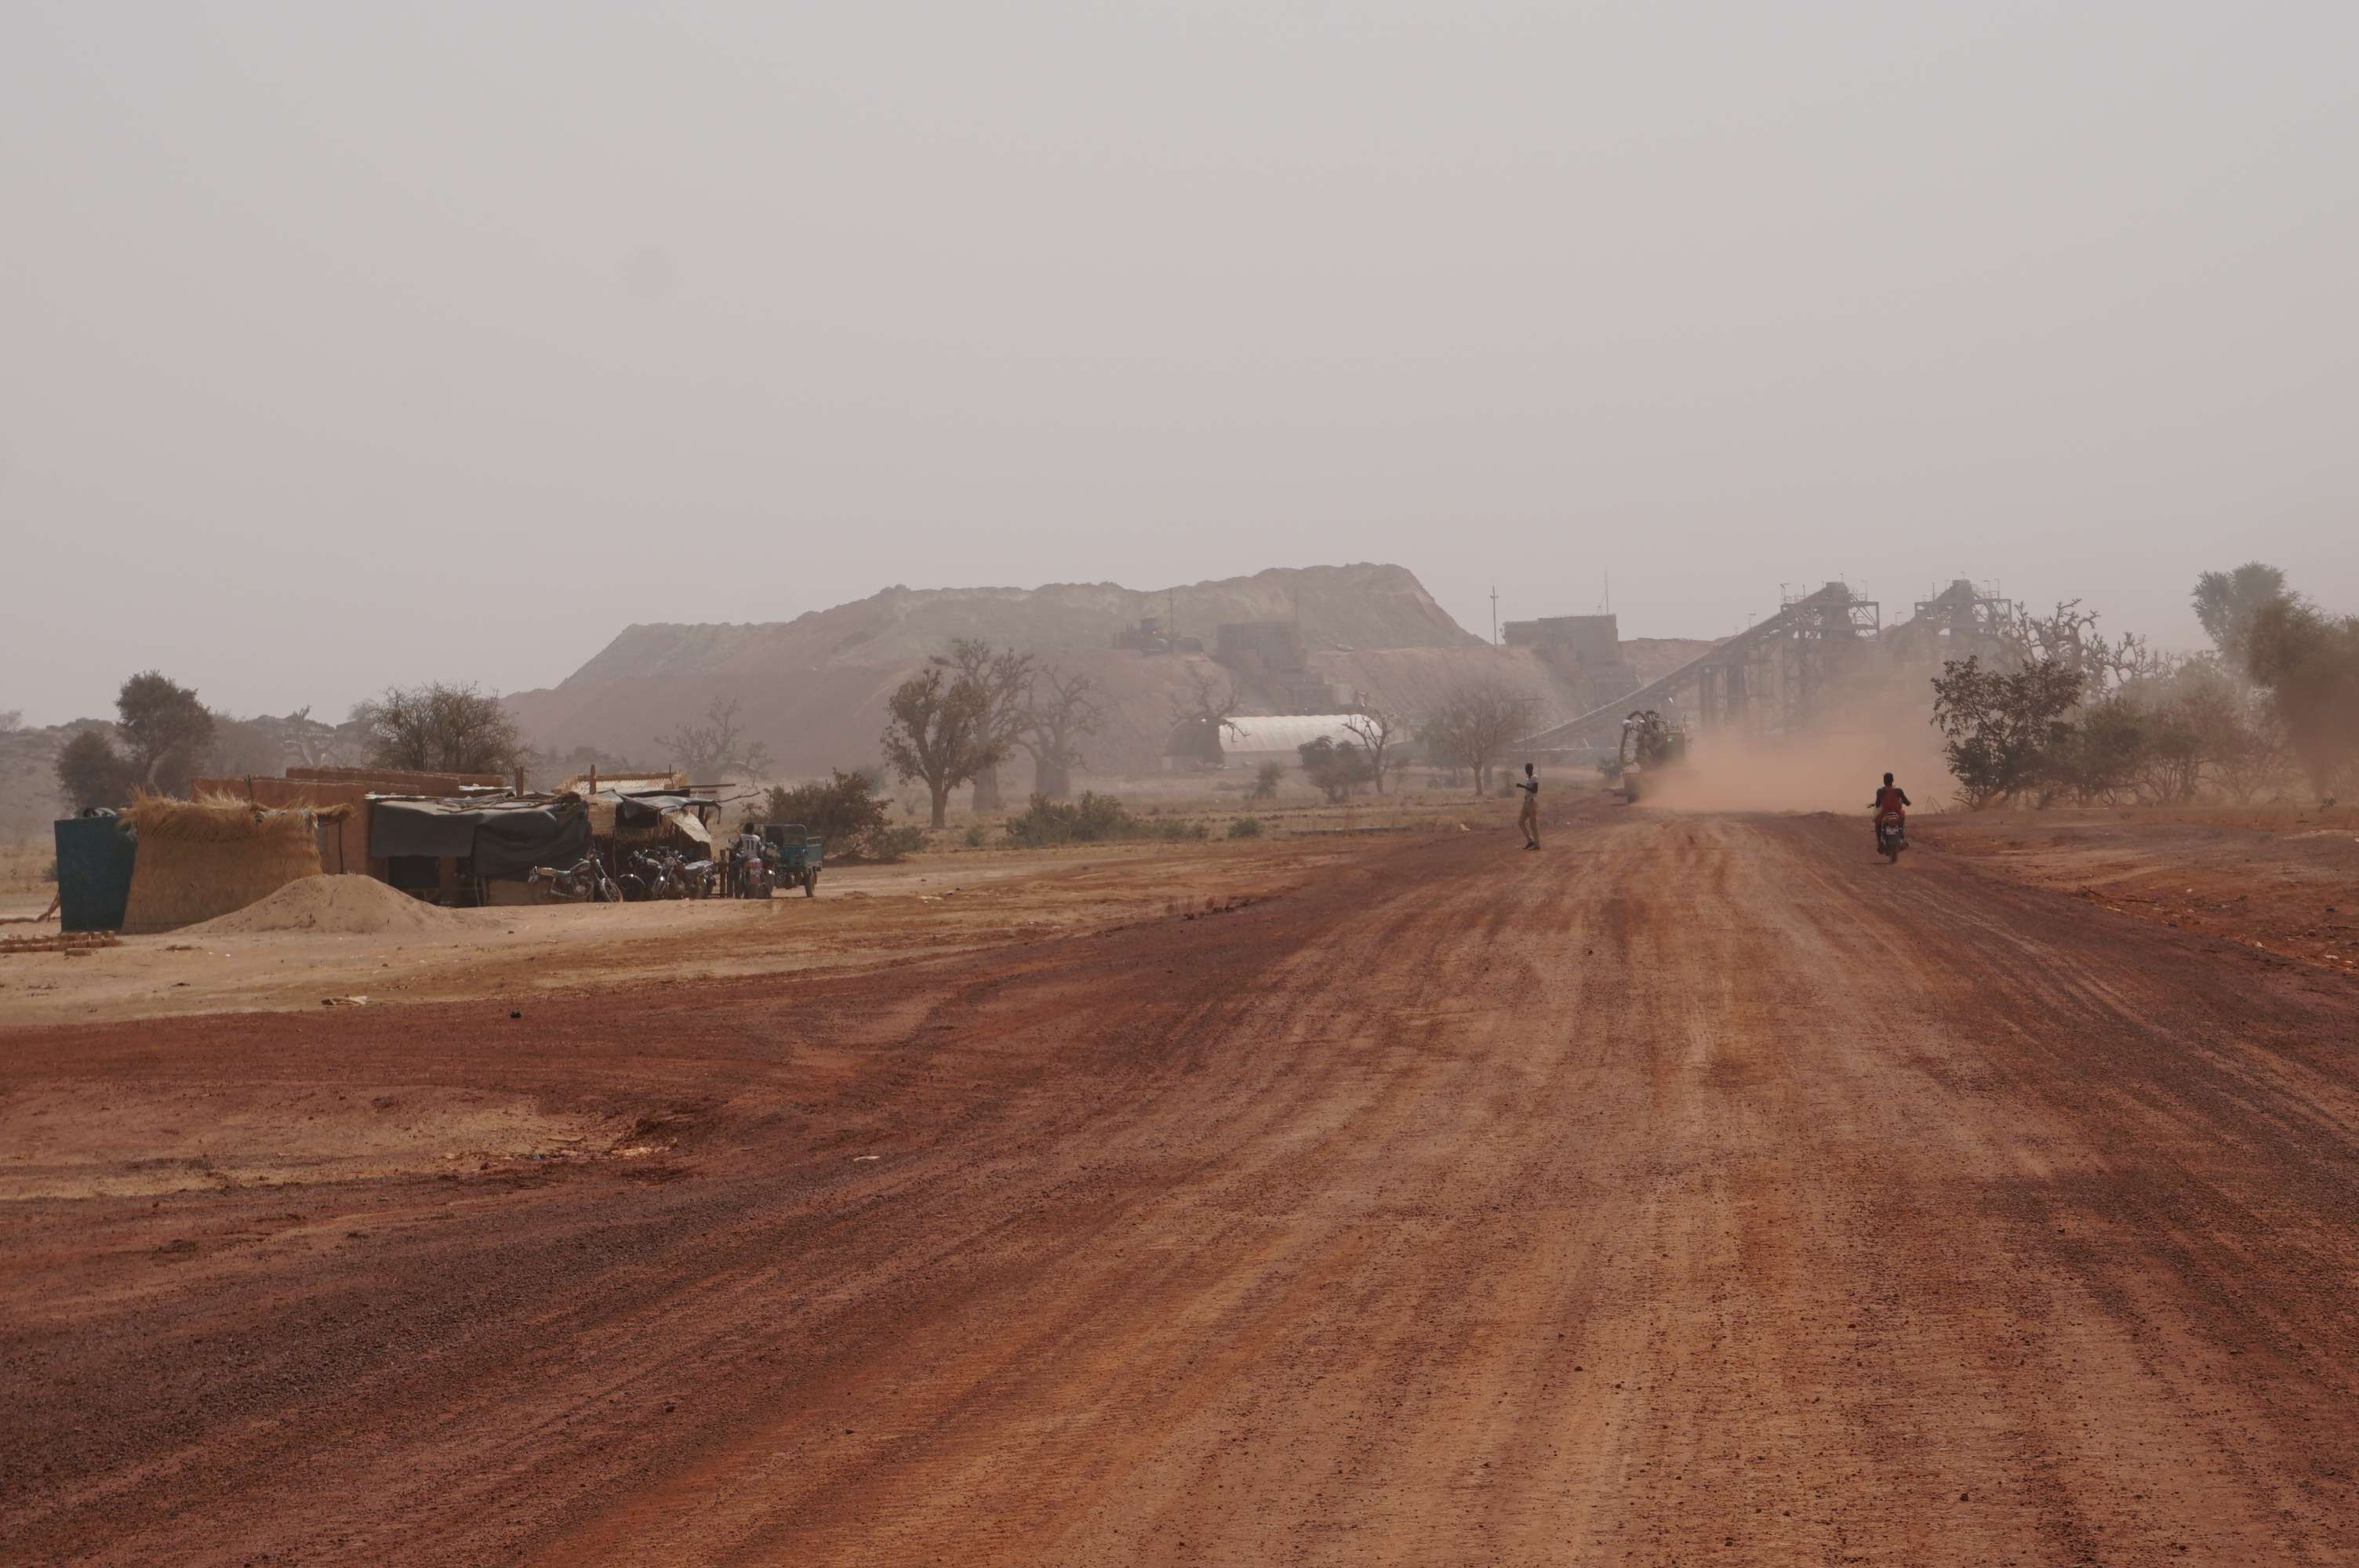 Mining Conflicts in Burkina Faso